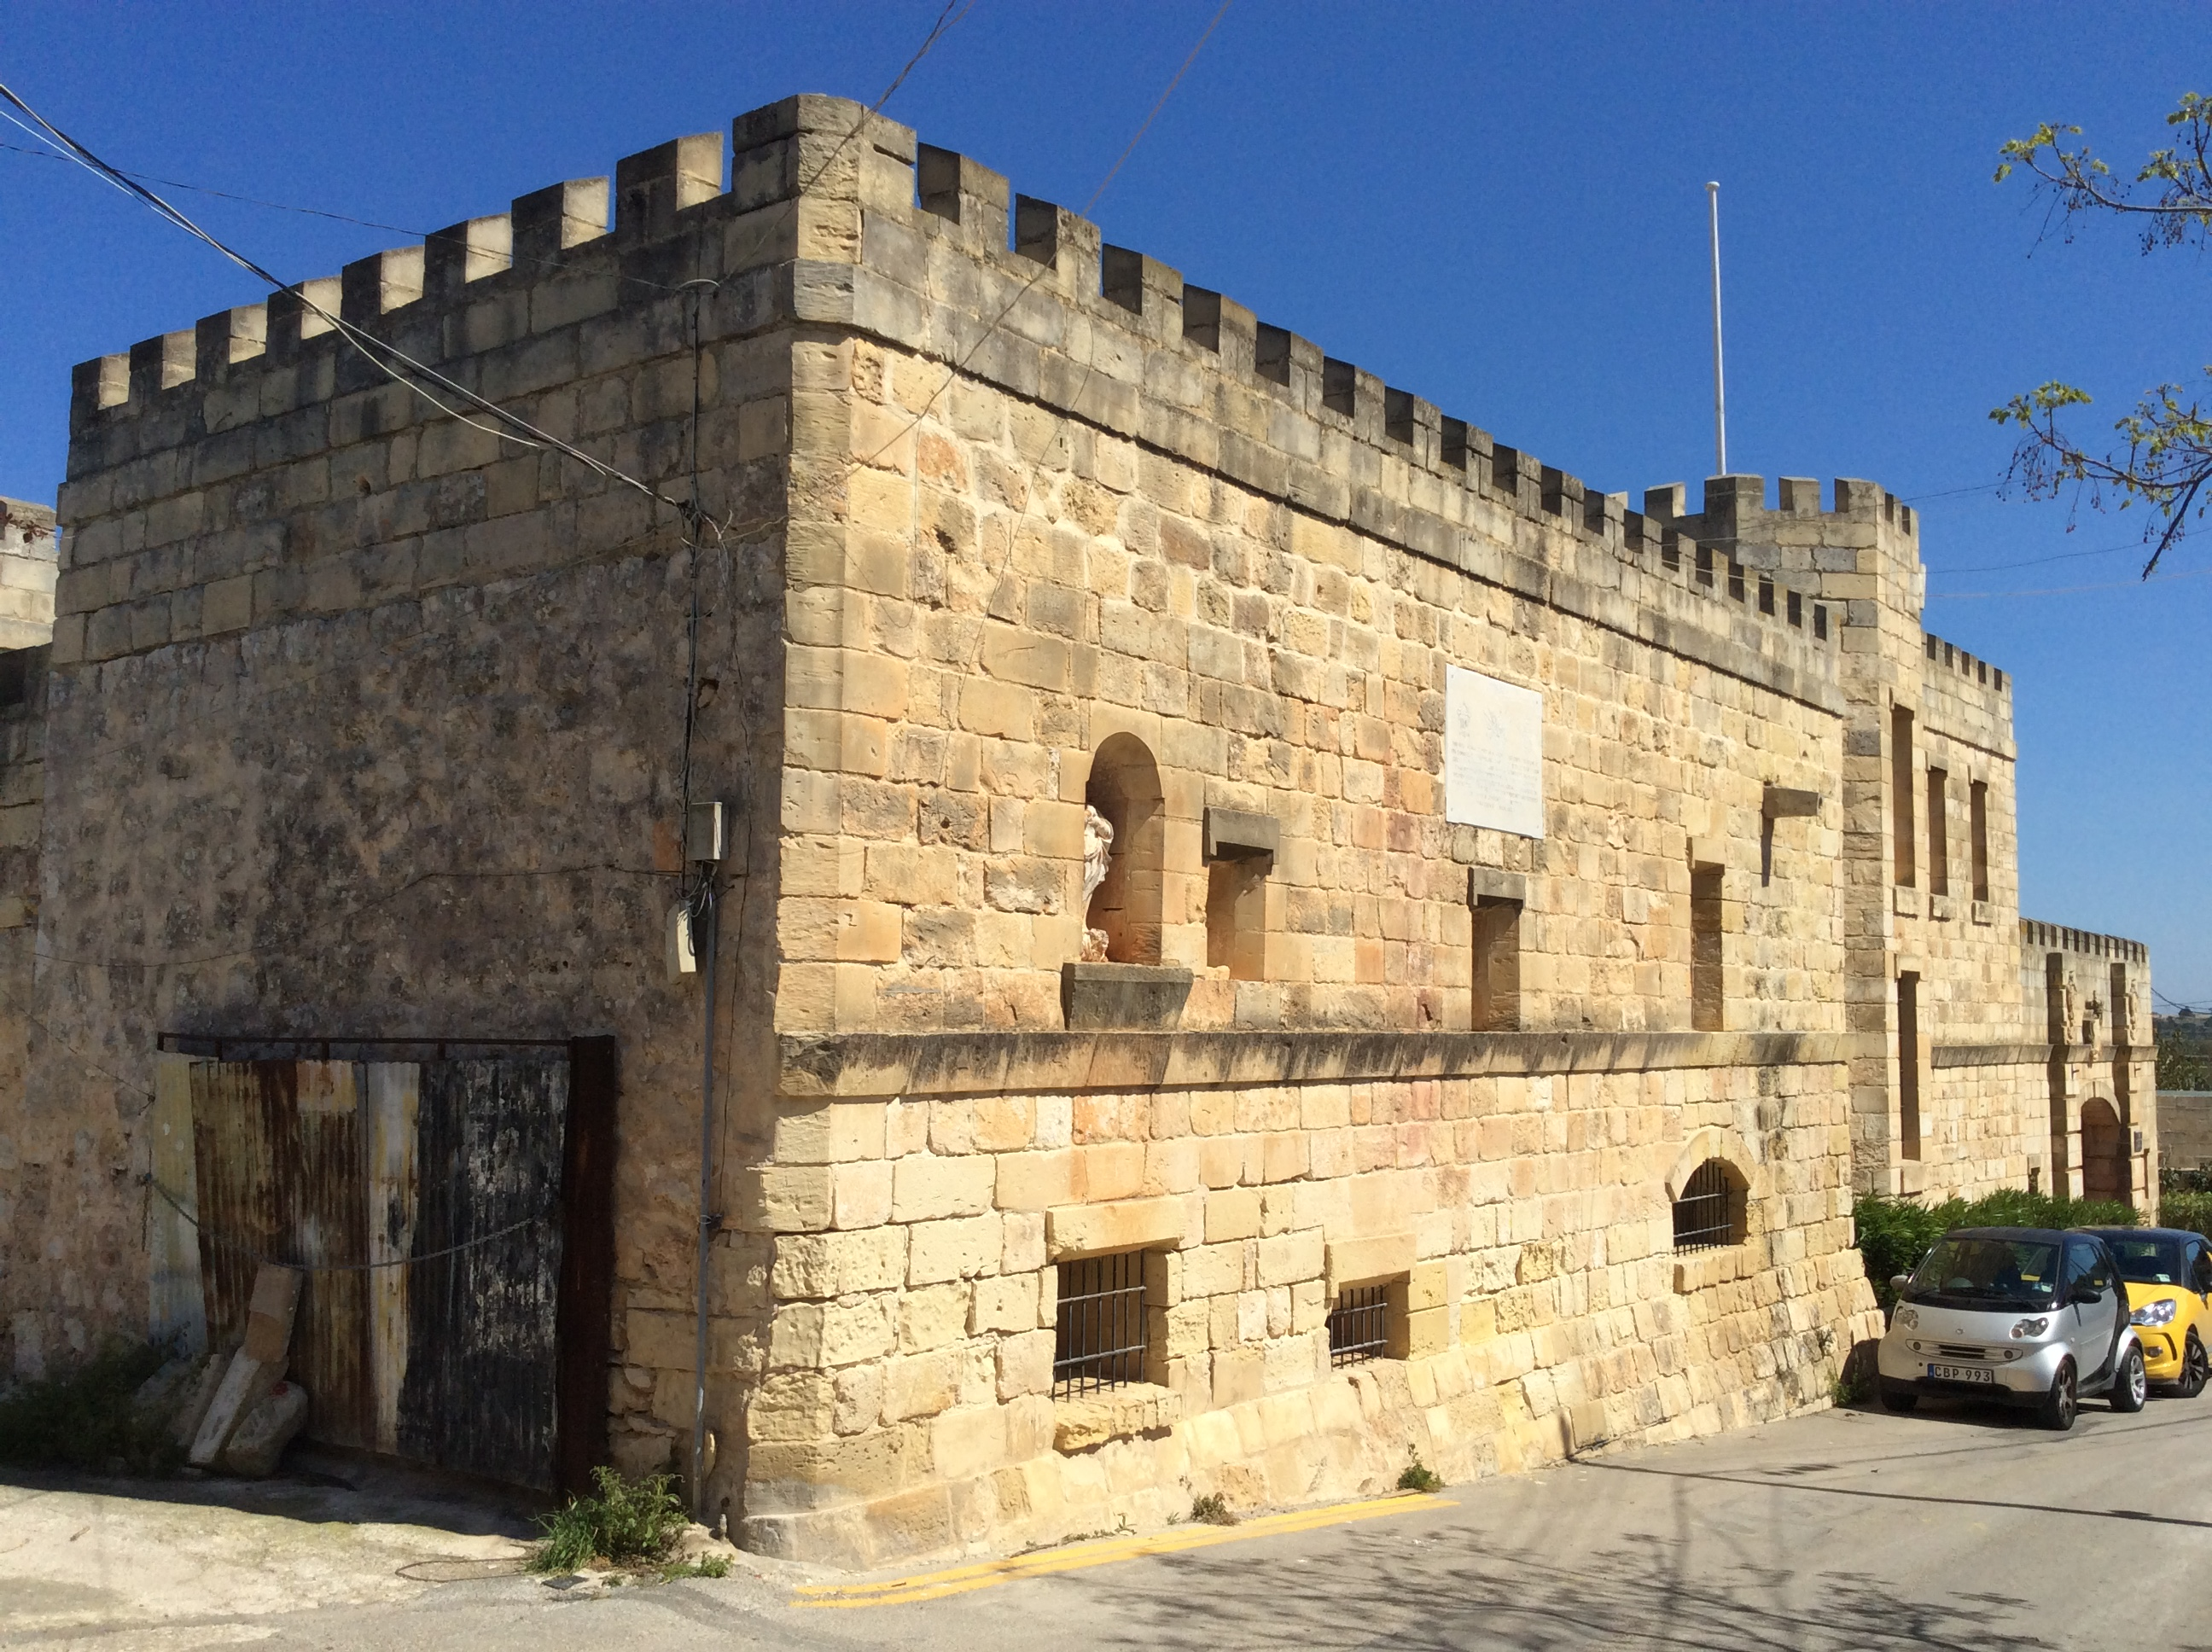 FileHunting Lodge Build During The Magistracy Of Perellos And Castello Dei Baroni